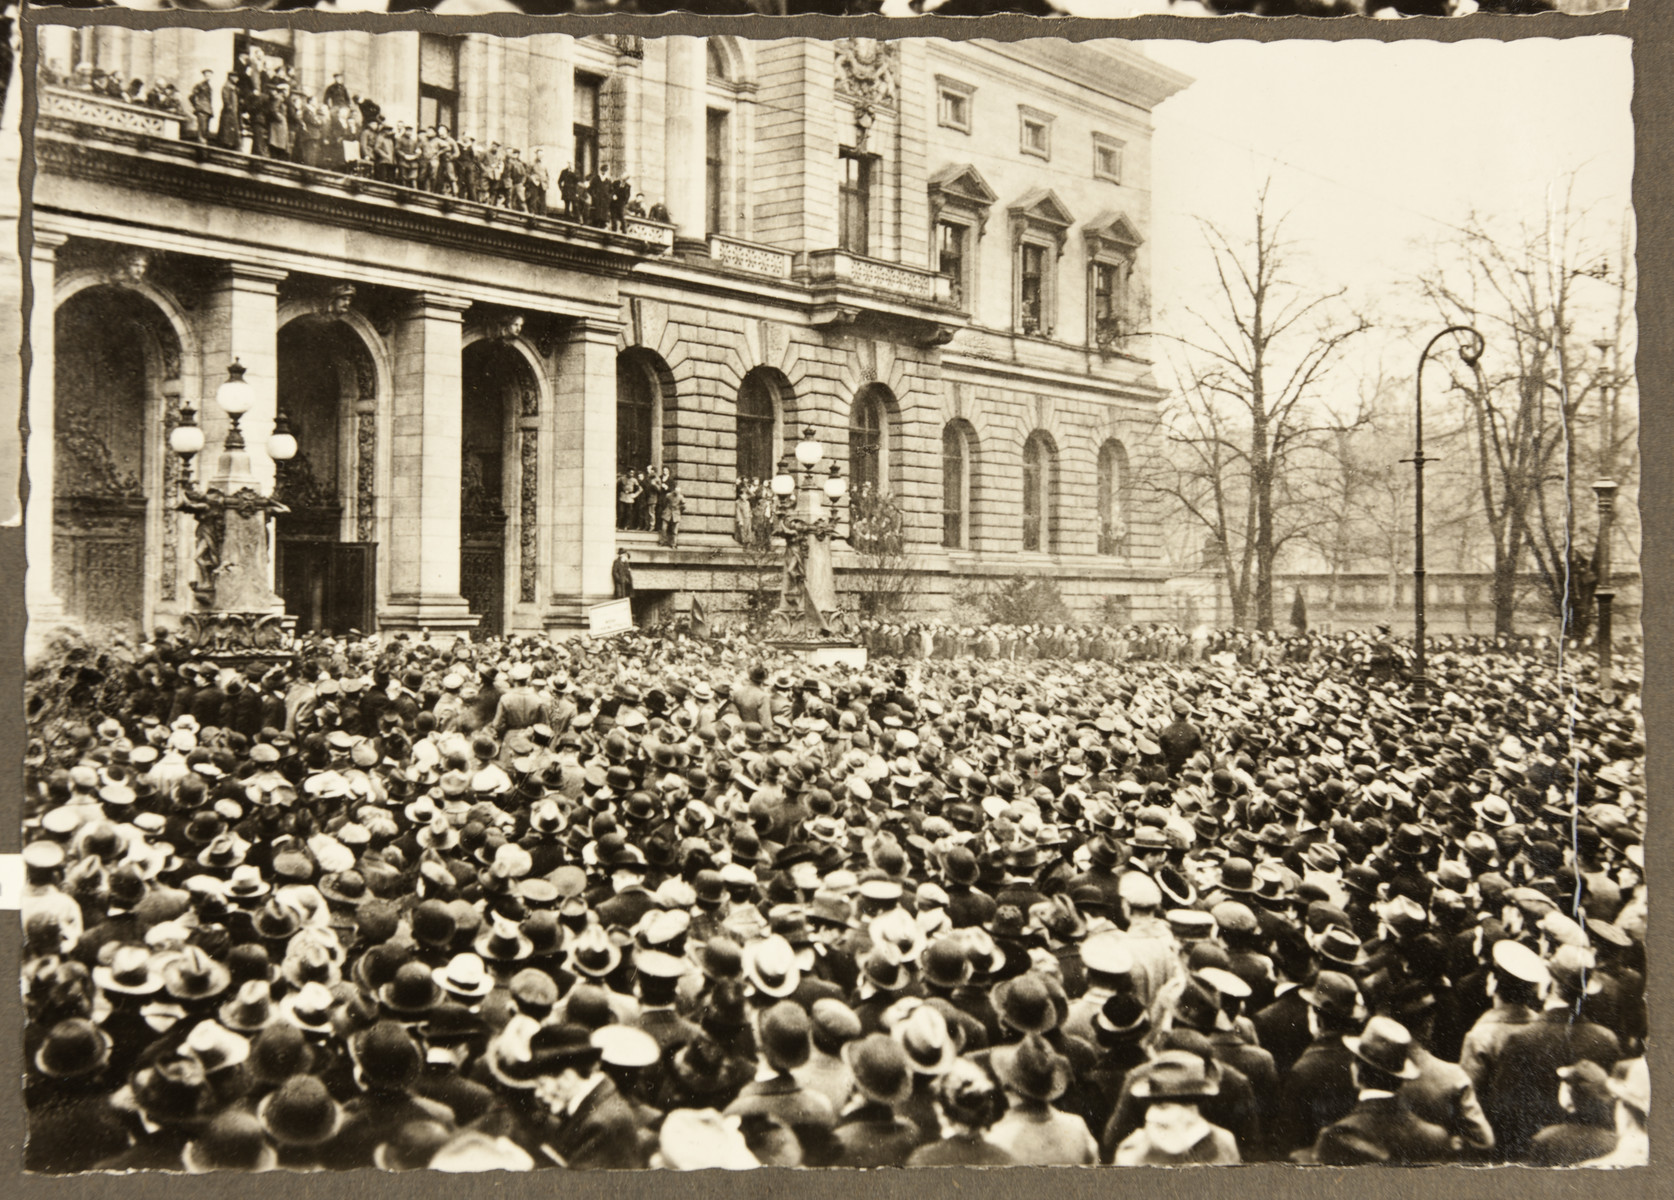 A crowd gathers before the Prussian House of Representatives building in Berlin.  The Prussian House of Representatives voted to disband at the onset of the German Revolution of 1918 -1919.